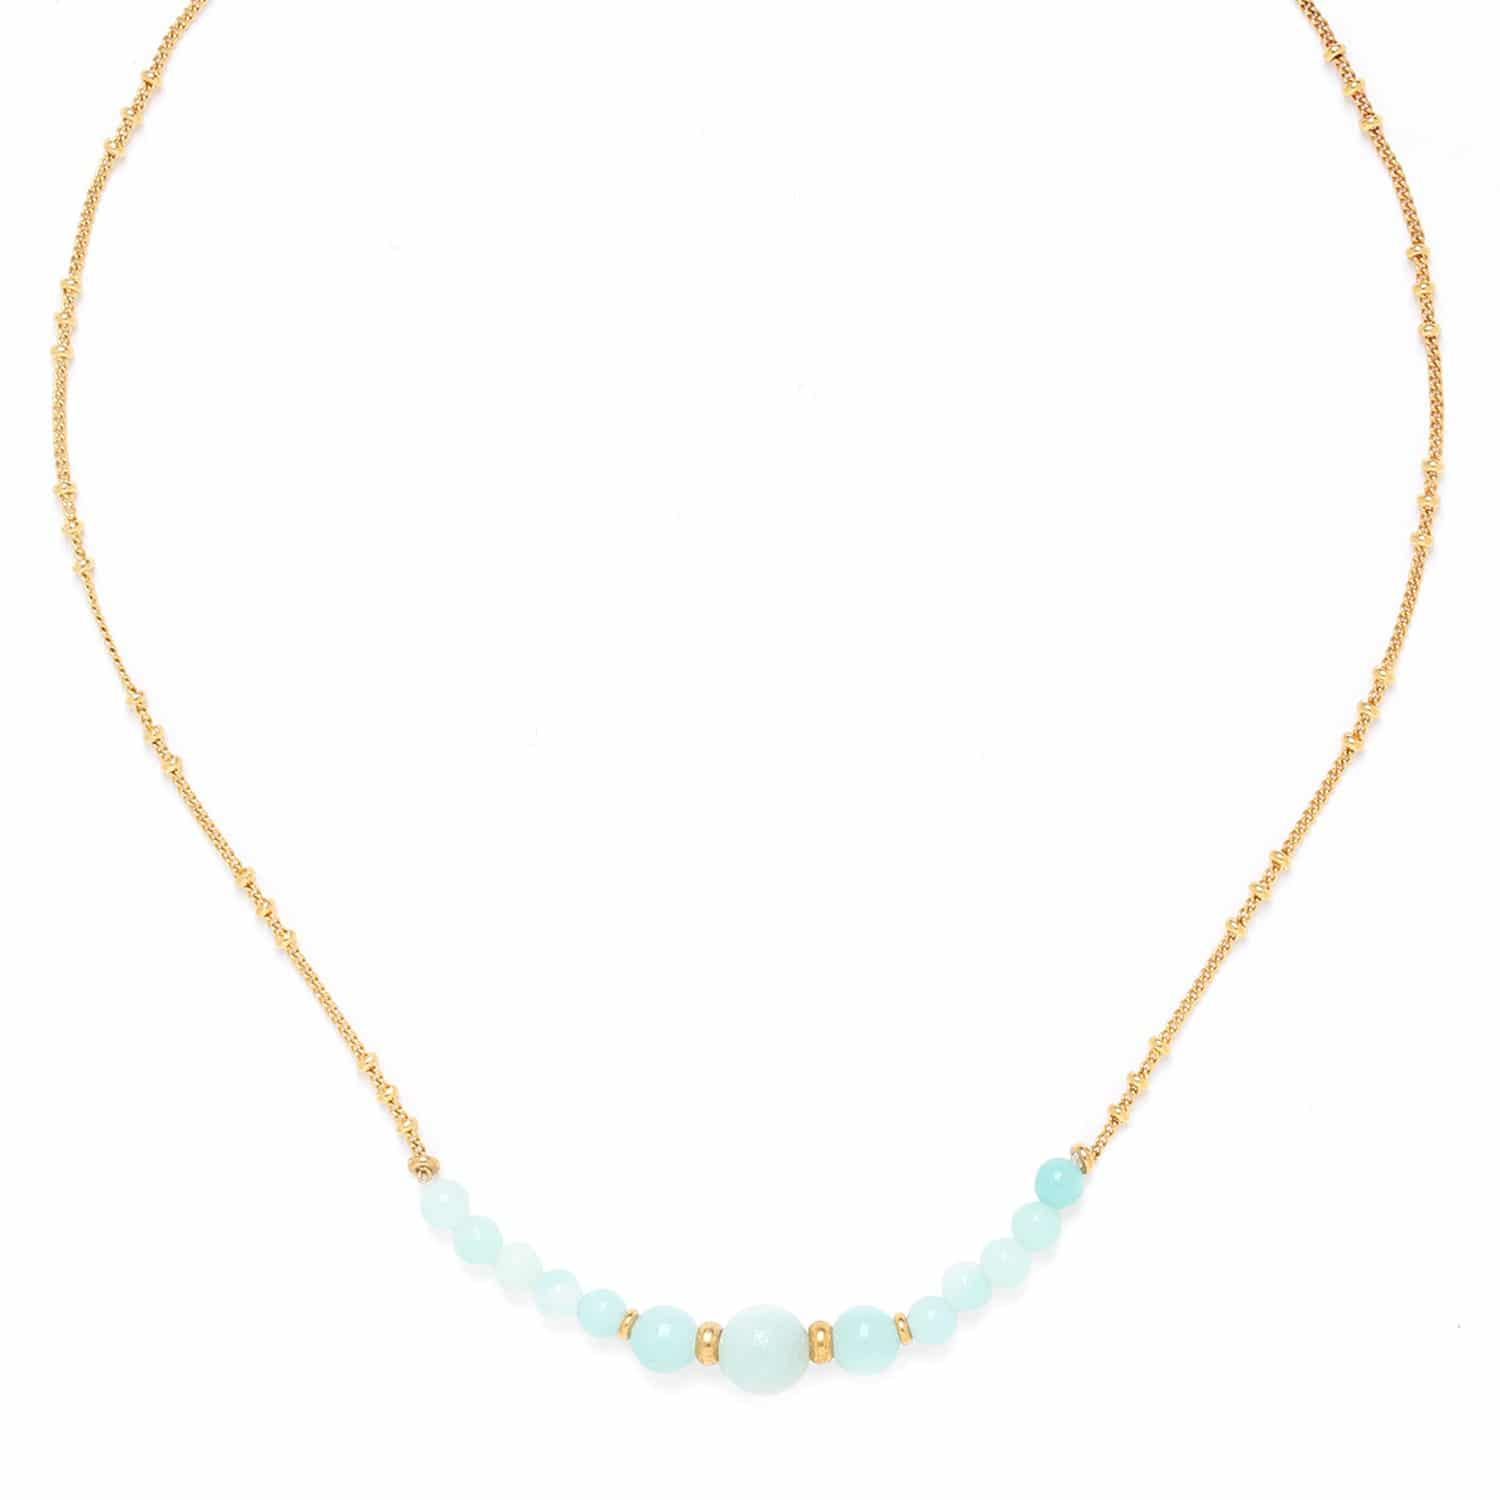 CELADON collier amazonite chaîne or